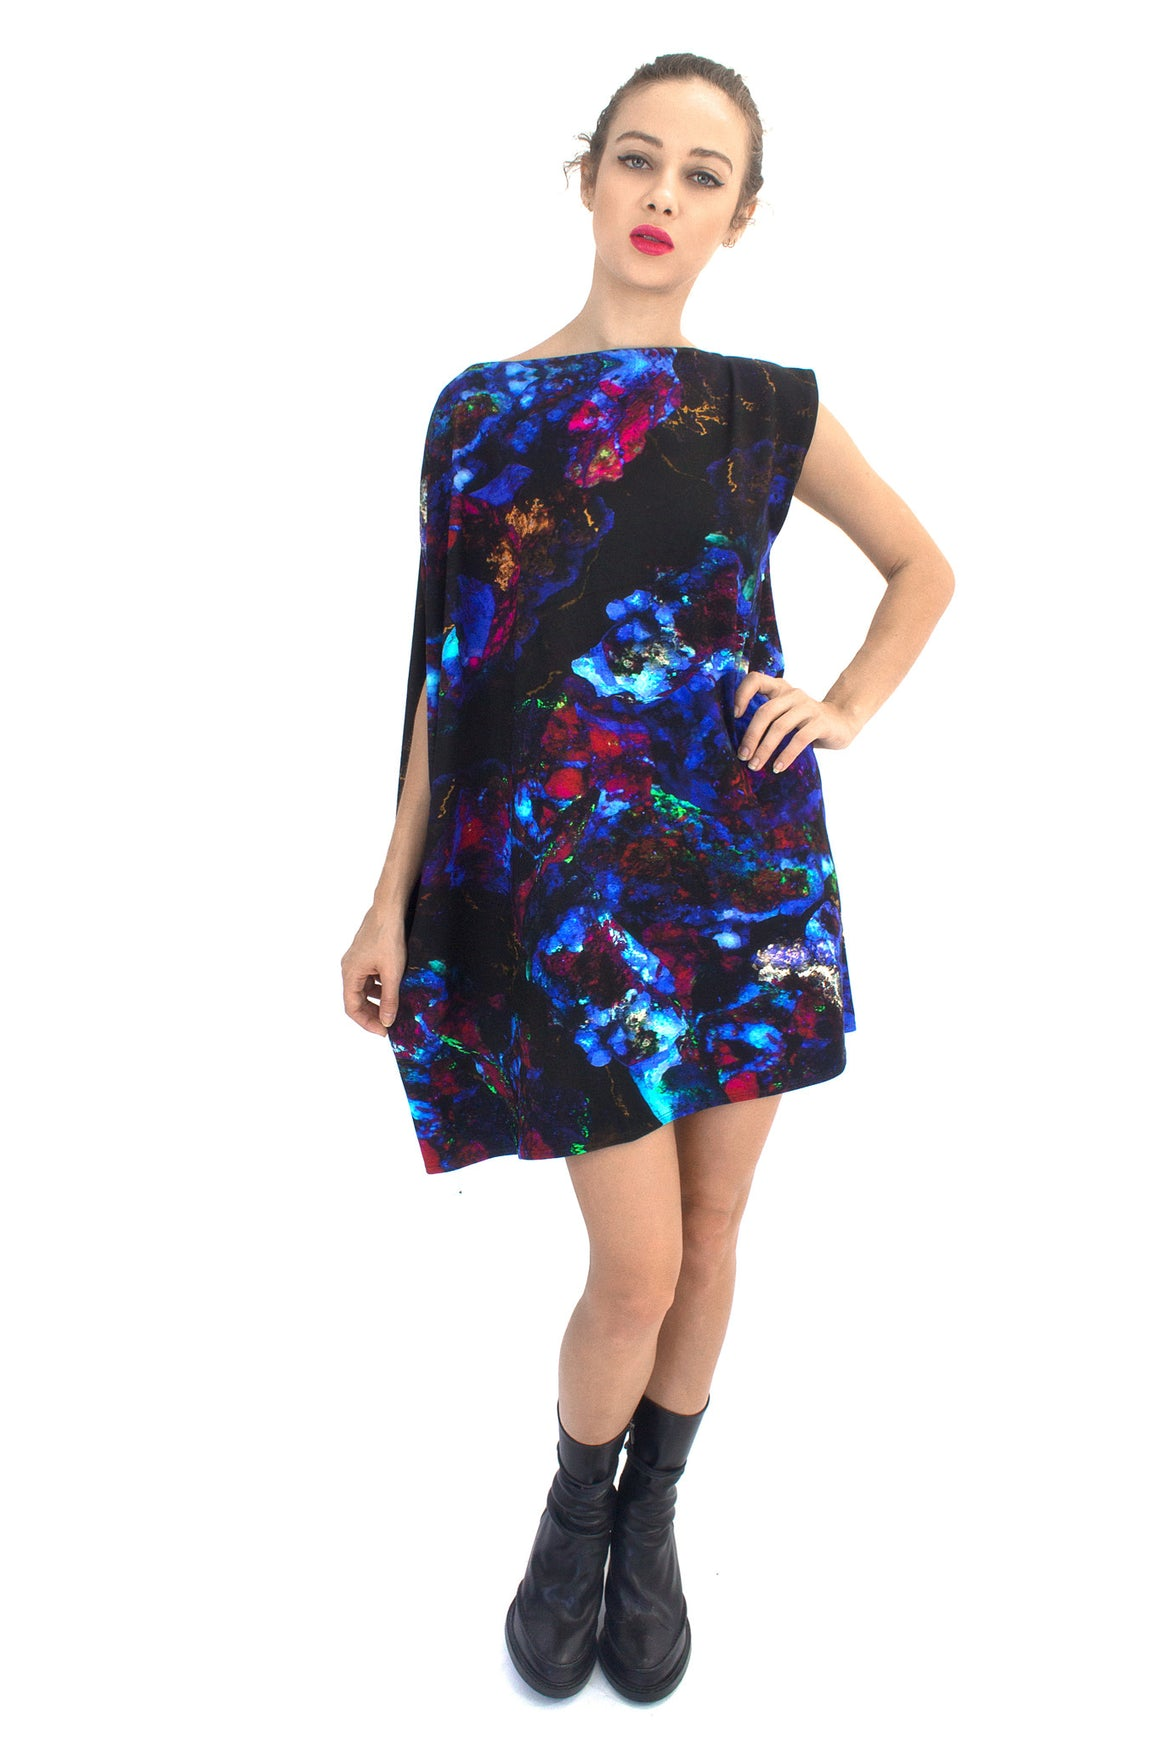 Fluorescent Dress, Shadowplay New York, Galaxy Print Clothing